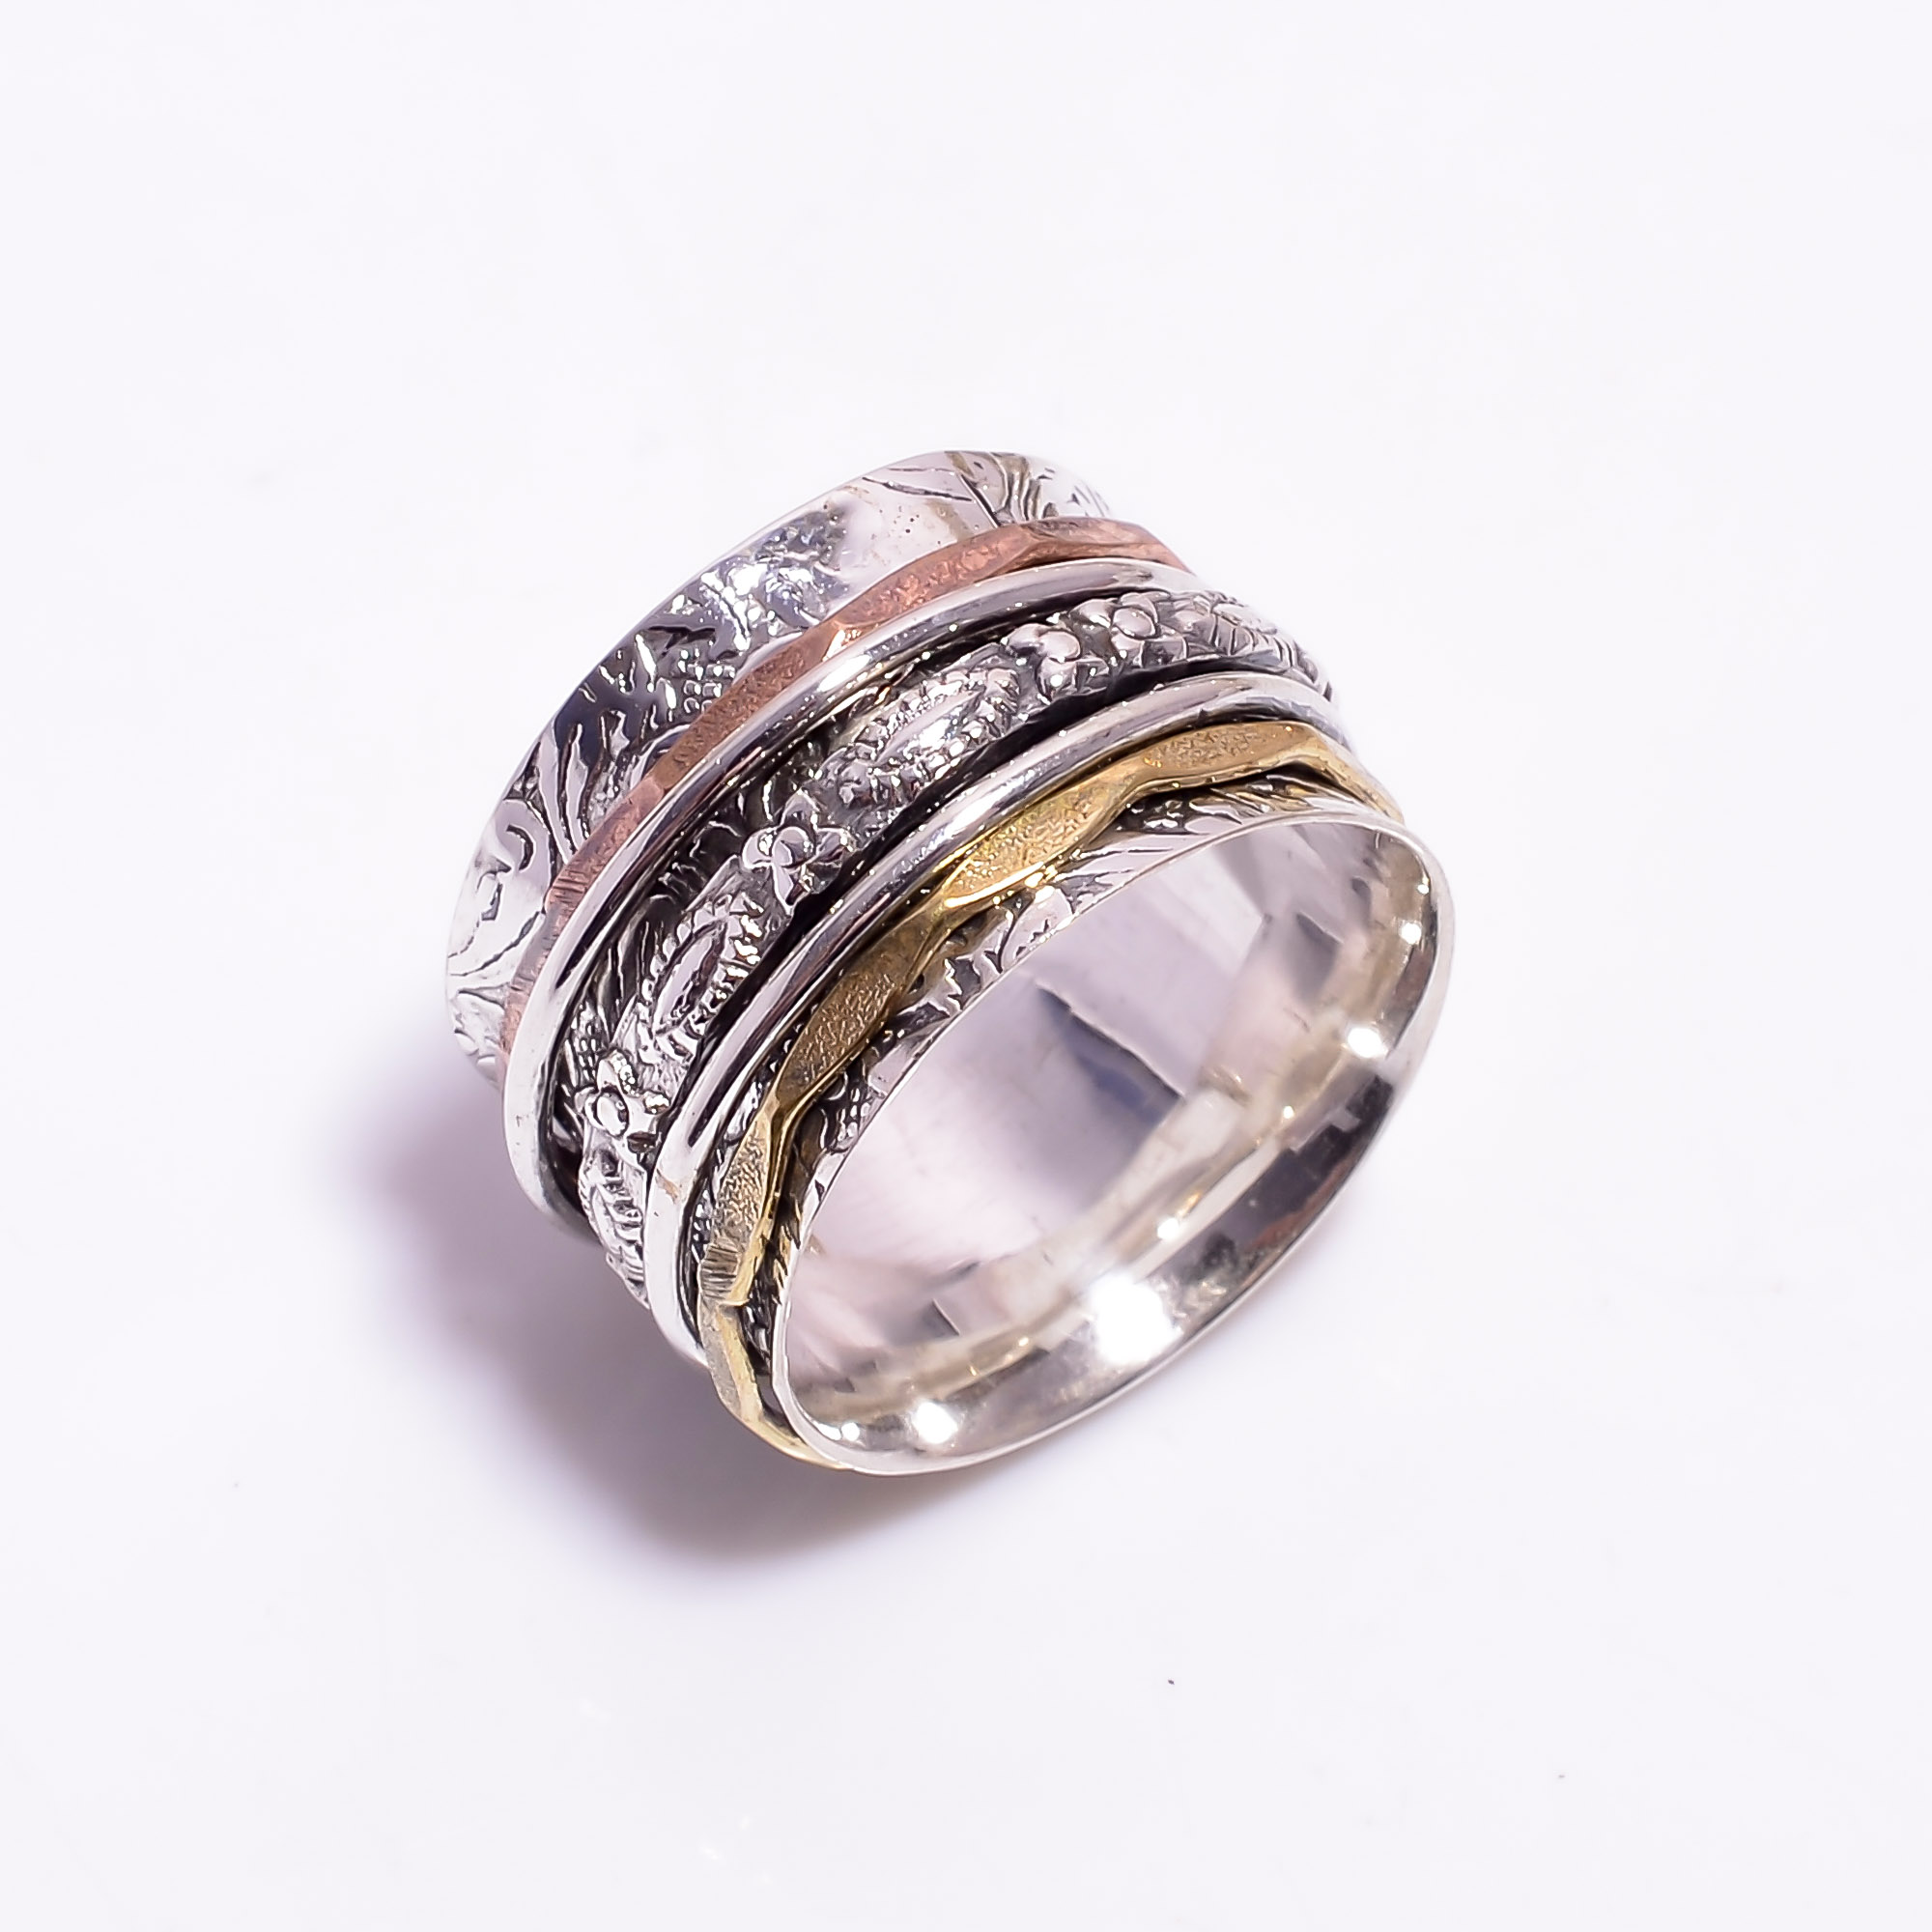 925 Sterling Silver Meditation Spinner Ring